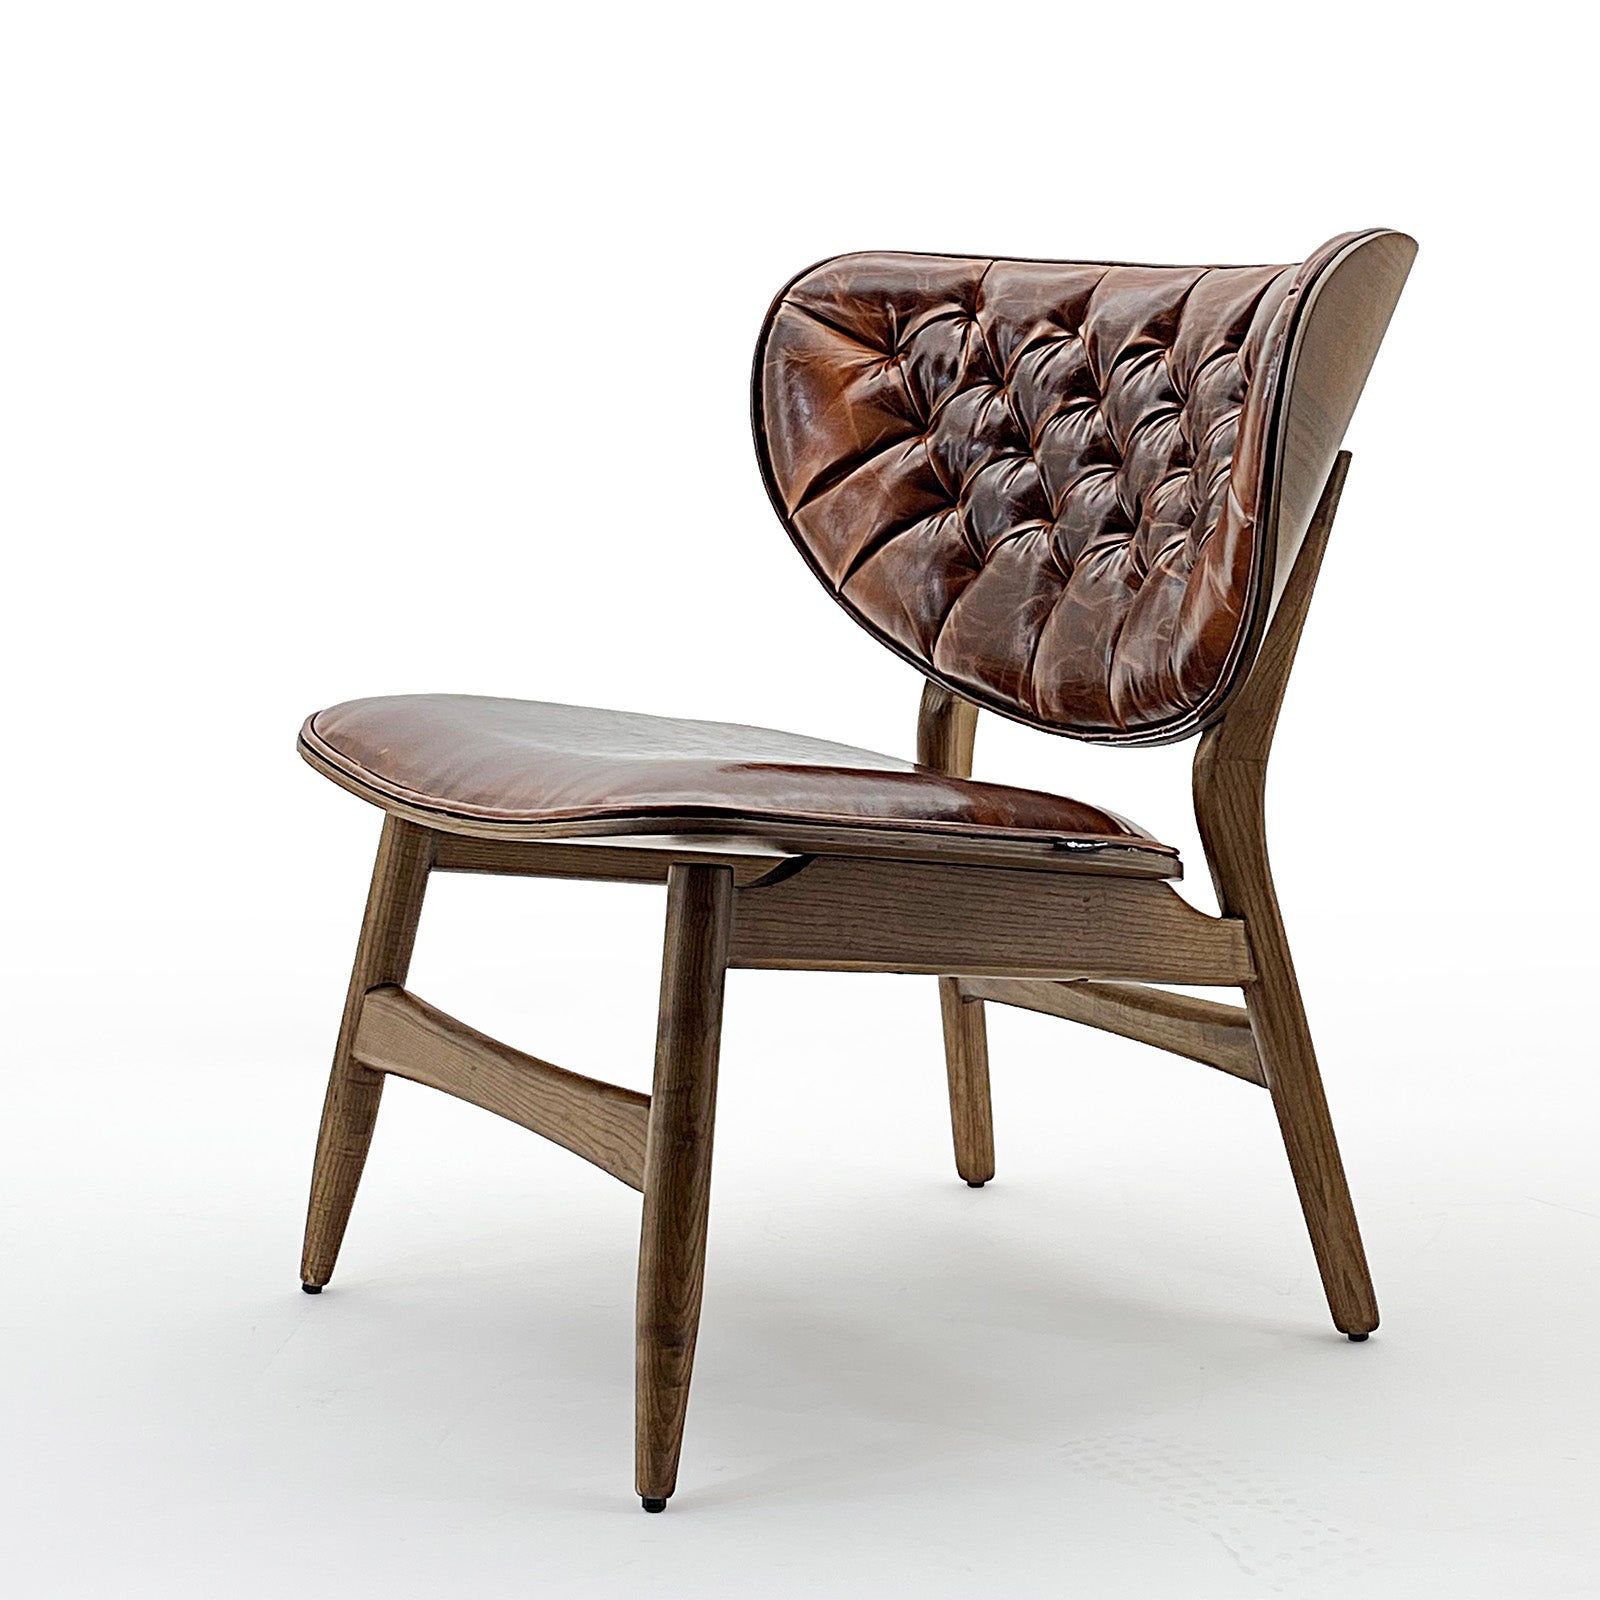 Flora Lounge Chair   Flora-ero040-vintage brown